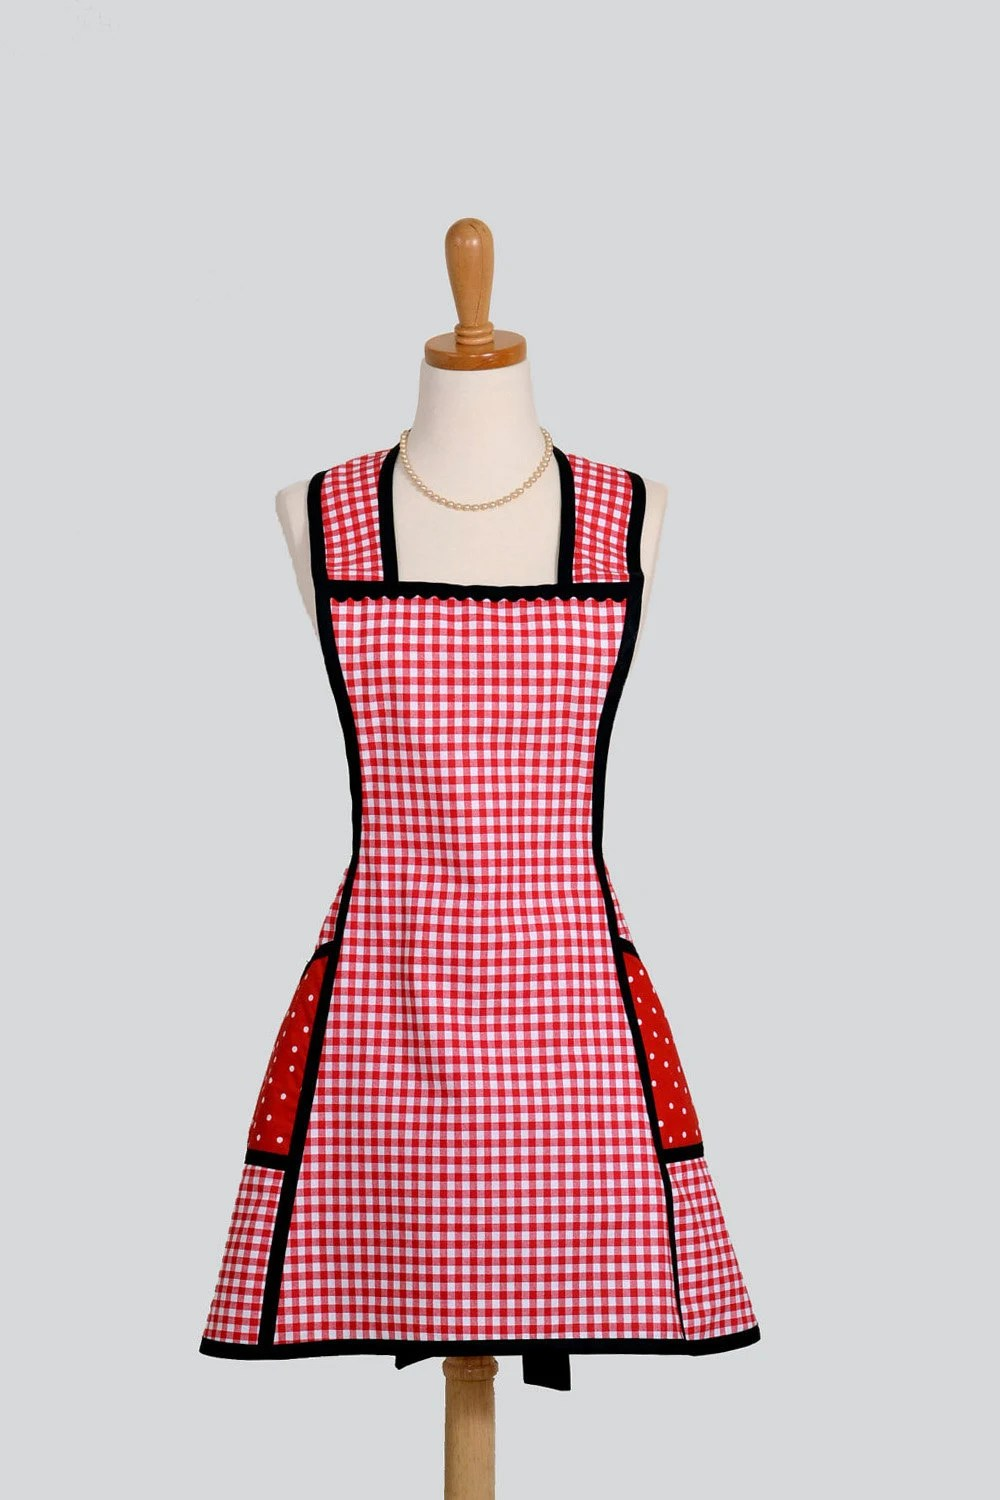 Vintage Inspired Apron  Sassy Short Retro Style by CreativeChics